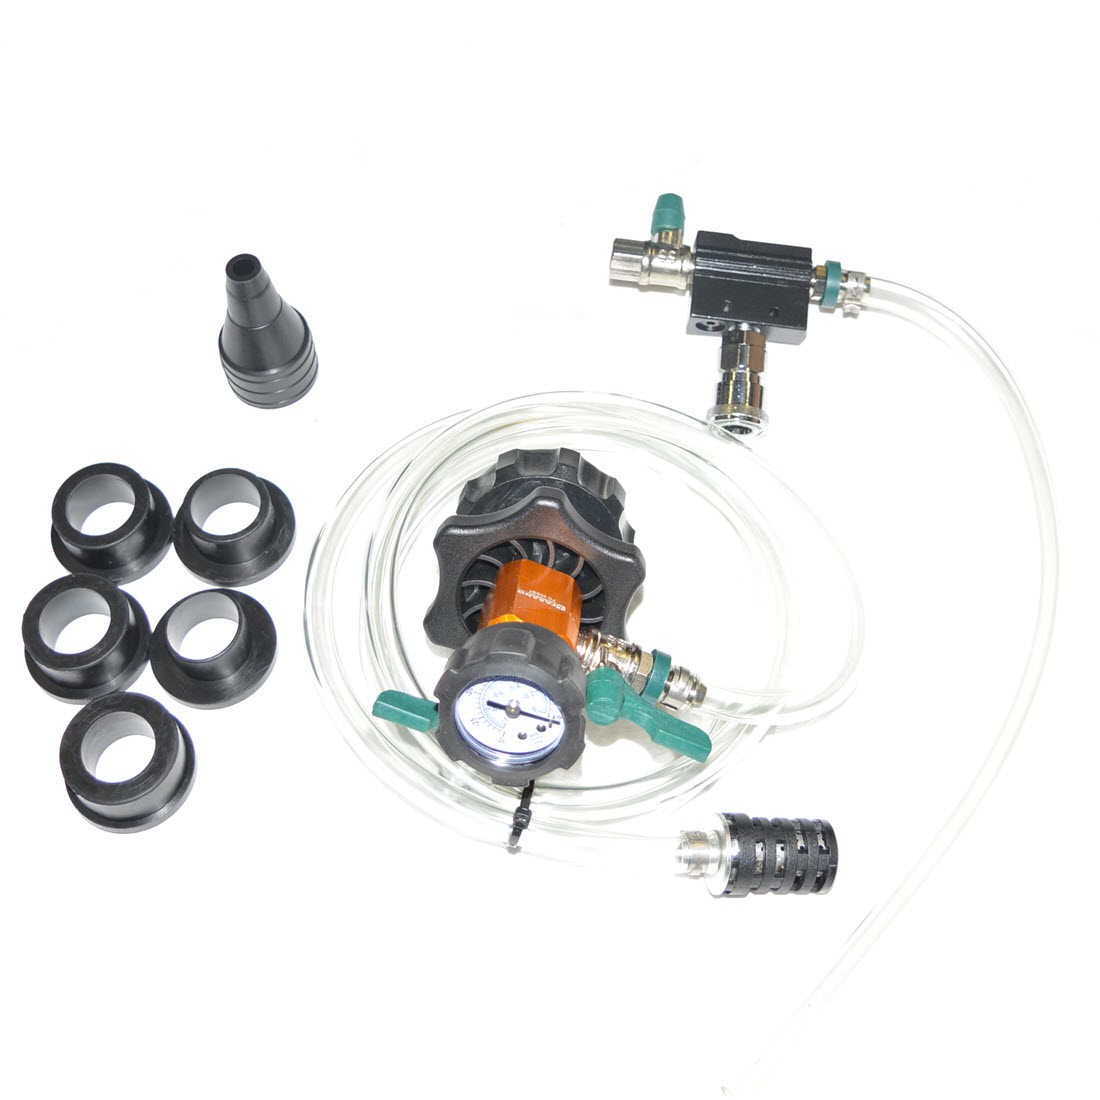 Cooling system vacuum and refill kit